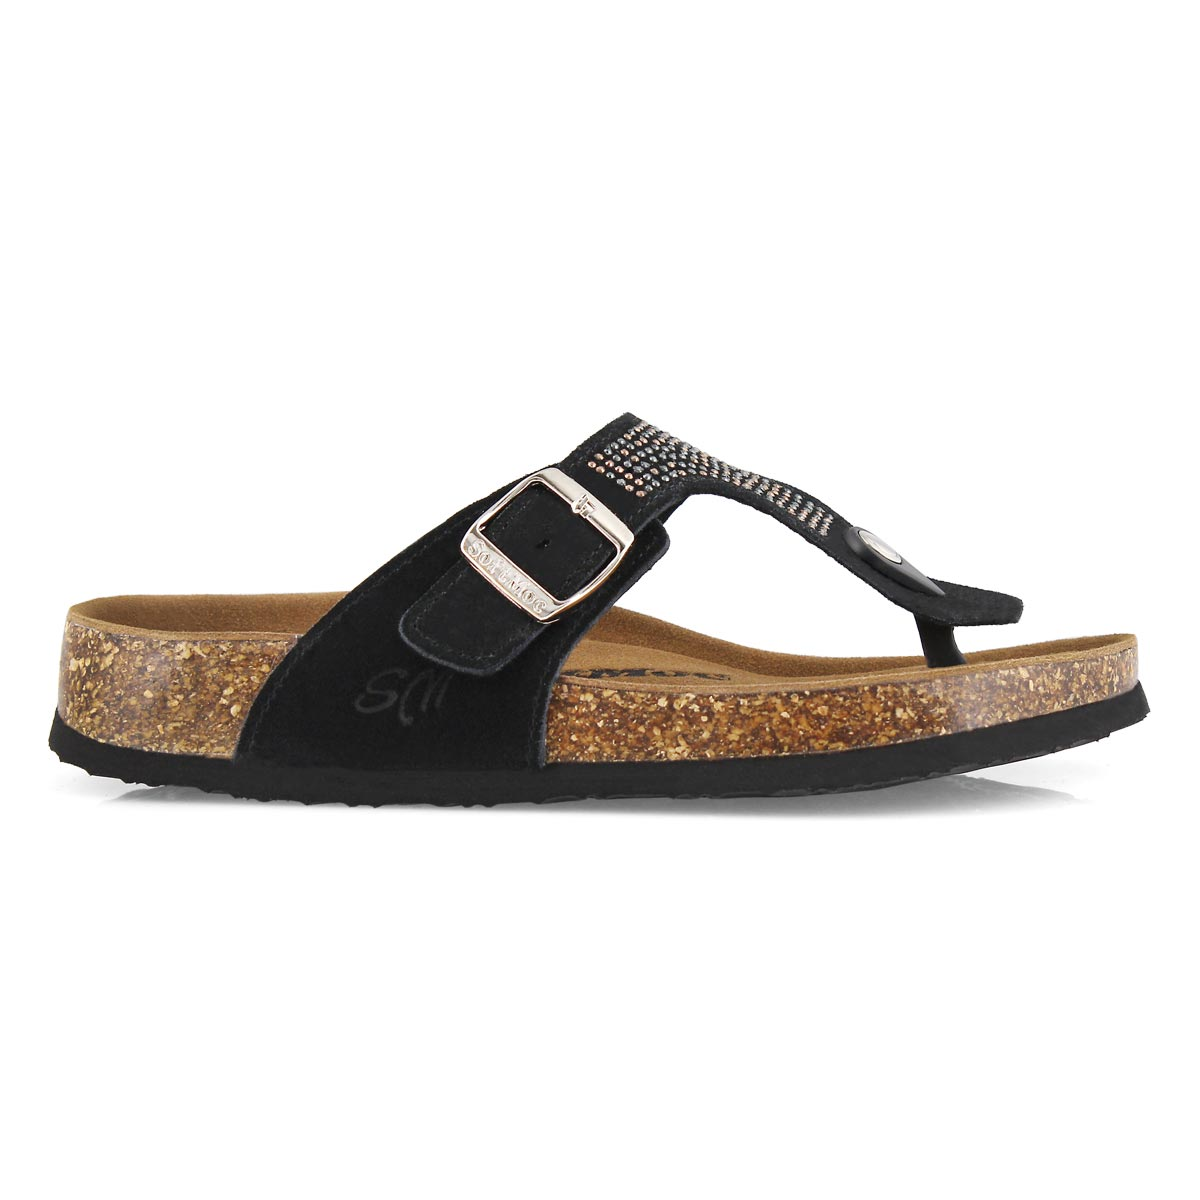 Lds Angy 5 Bling blk perf thong sandal